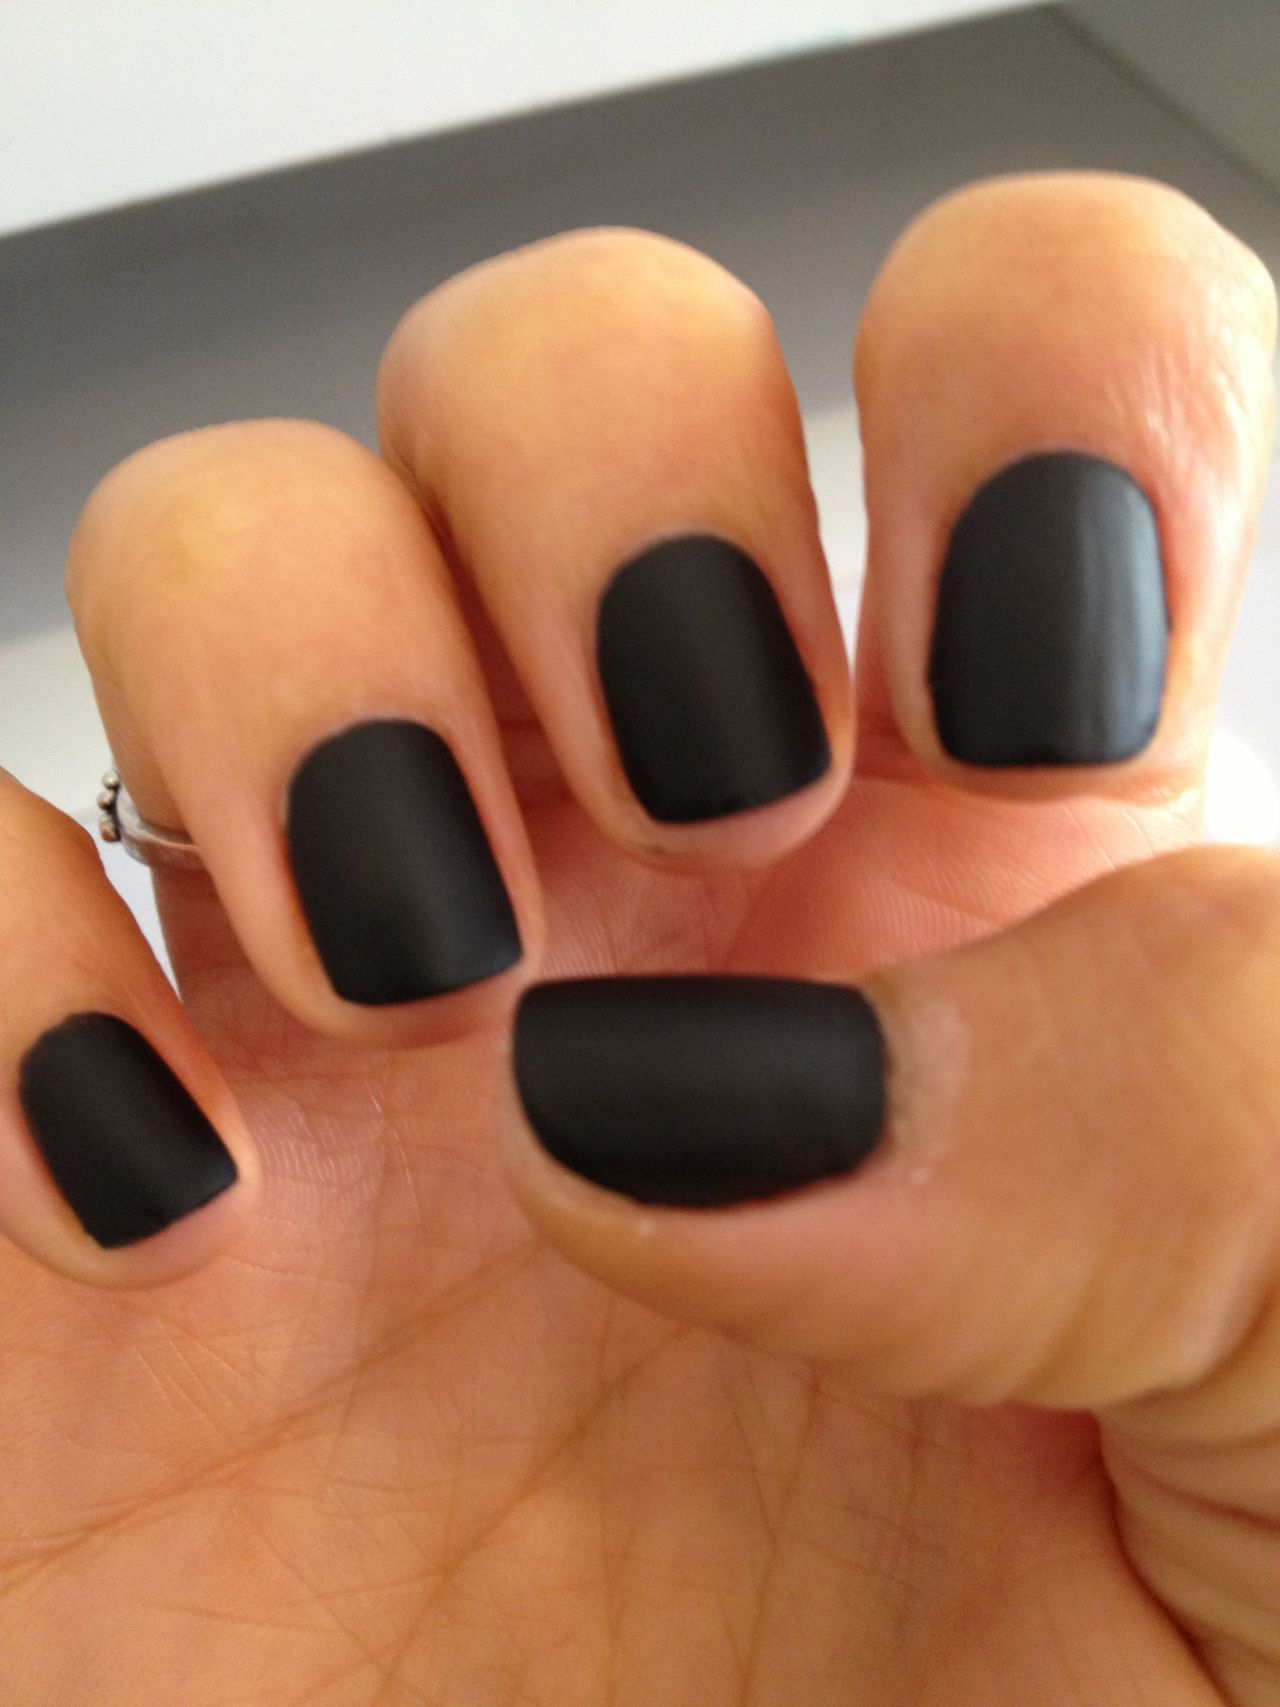 this is gorgeous though i bite my nails too much to paint | nails ...